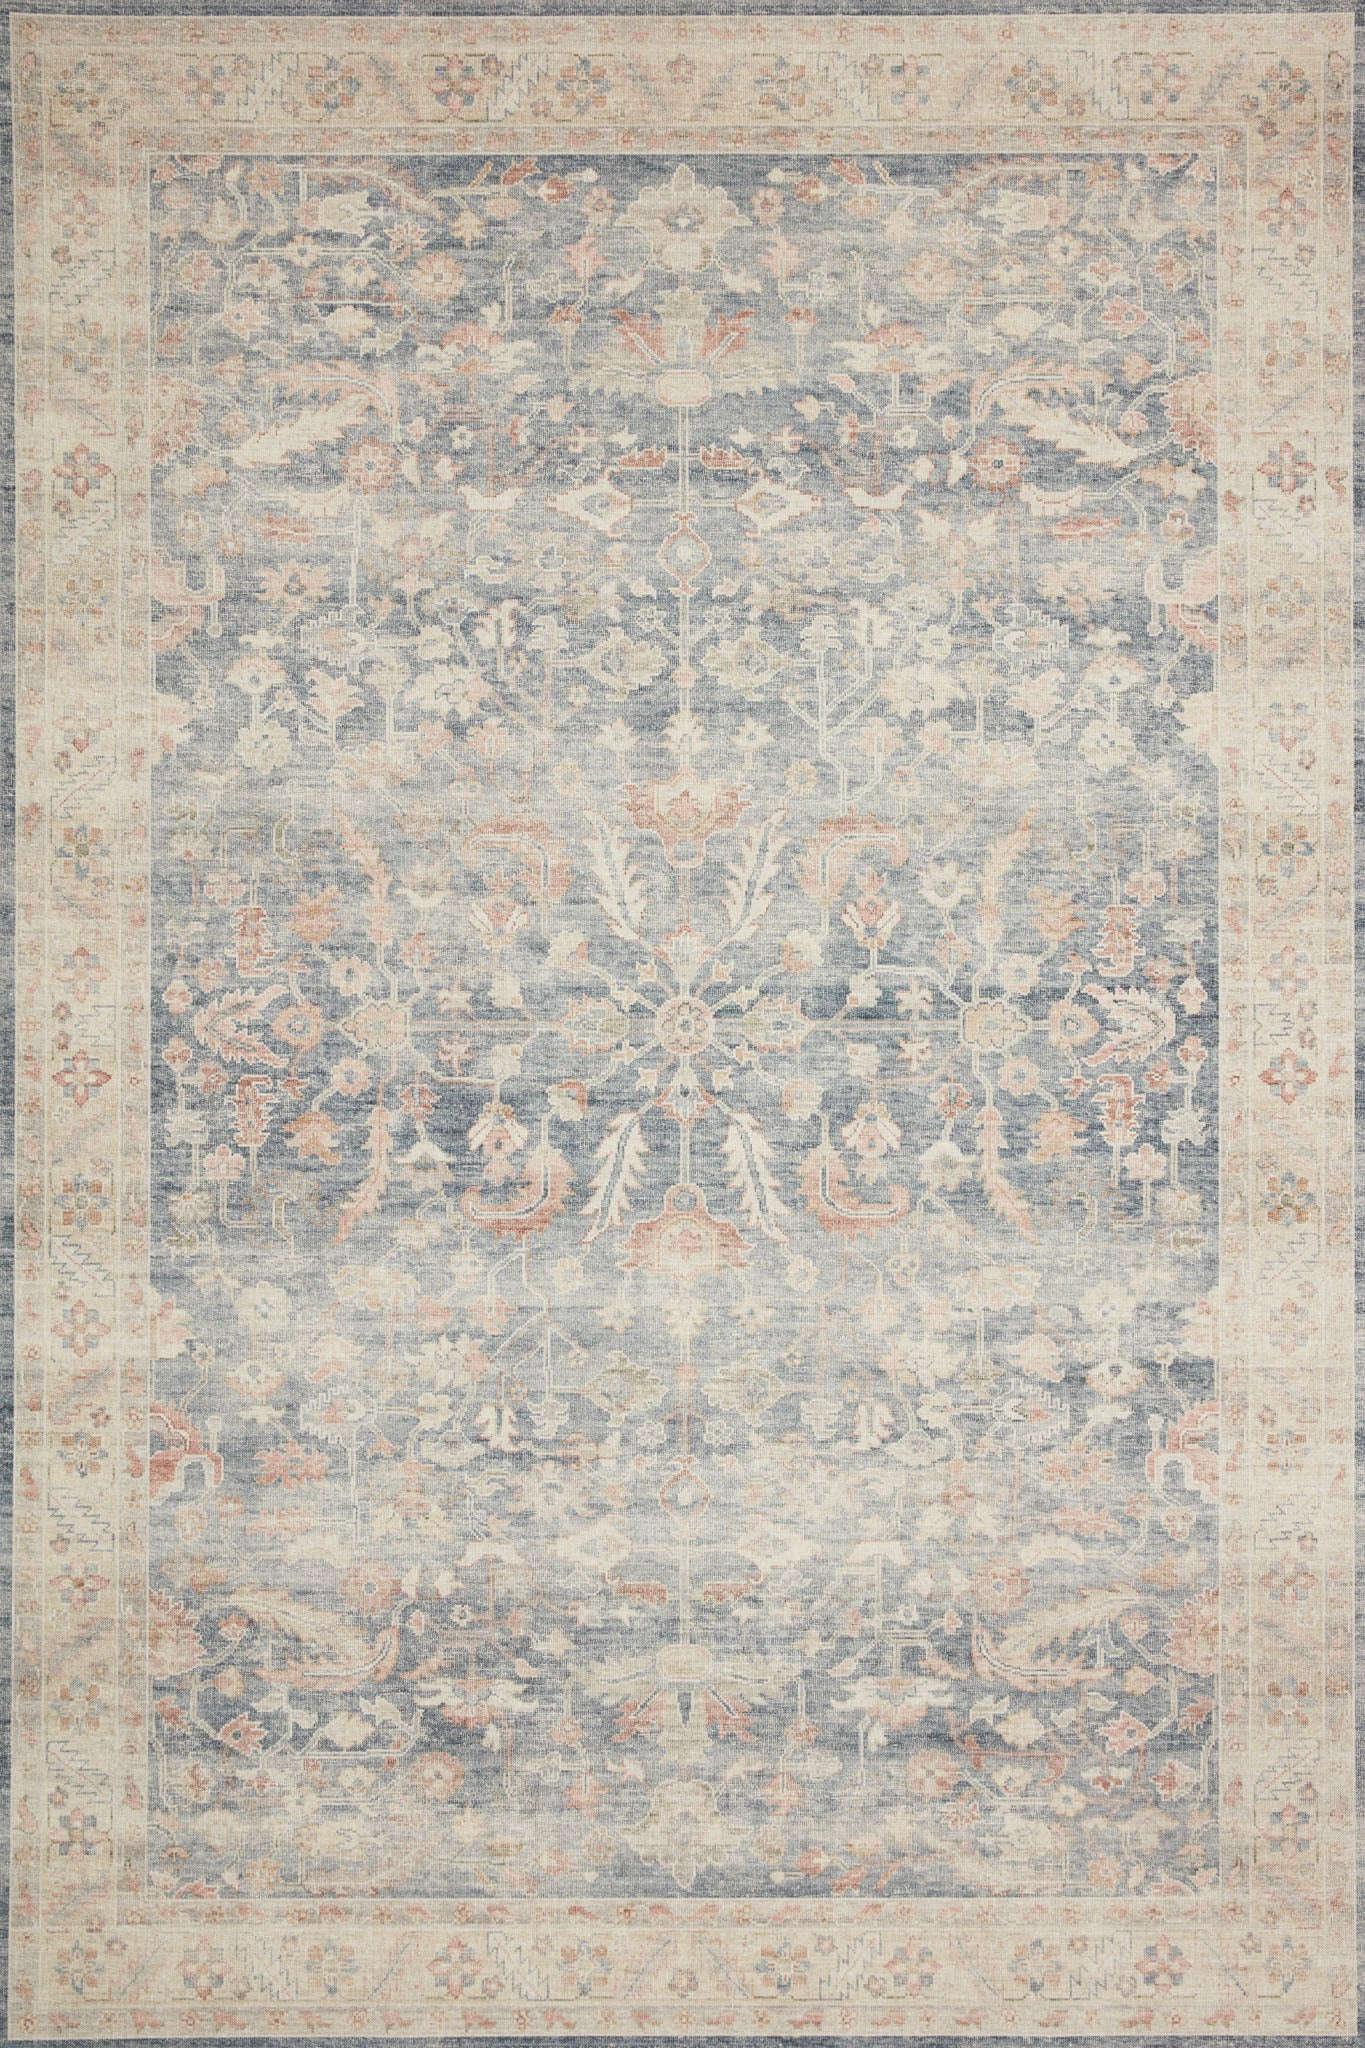 In Store Rug - Hathaway Denim / Multi